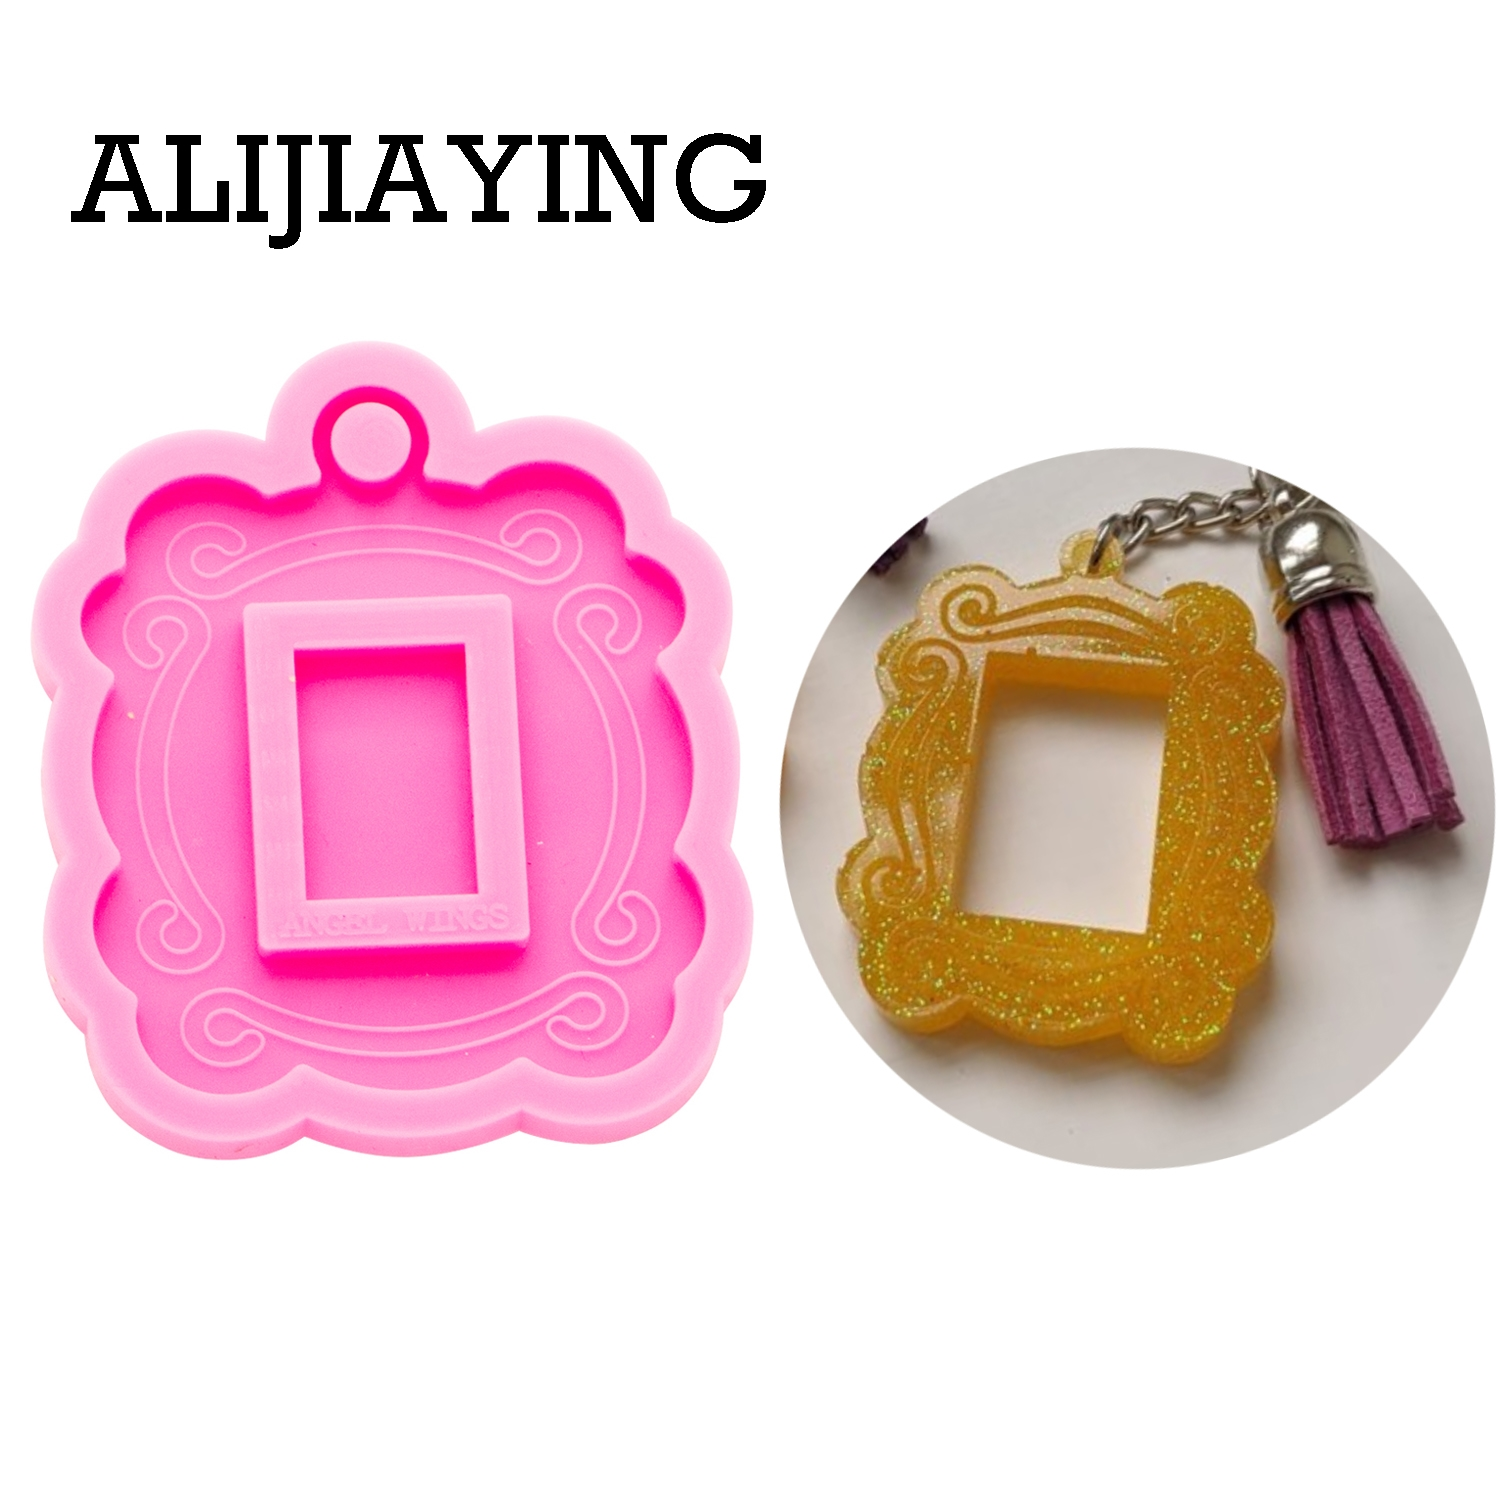 DY0262 Smooth Art Design Photo Frame Pendant Craft Epoxy Resin DIY Silicon Mold For Keychain Resin Jewelry